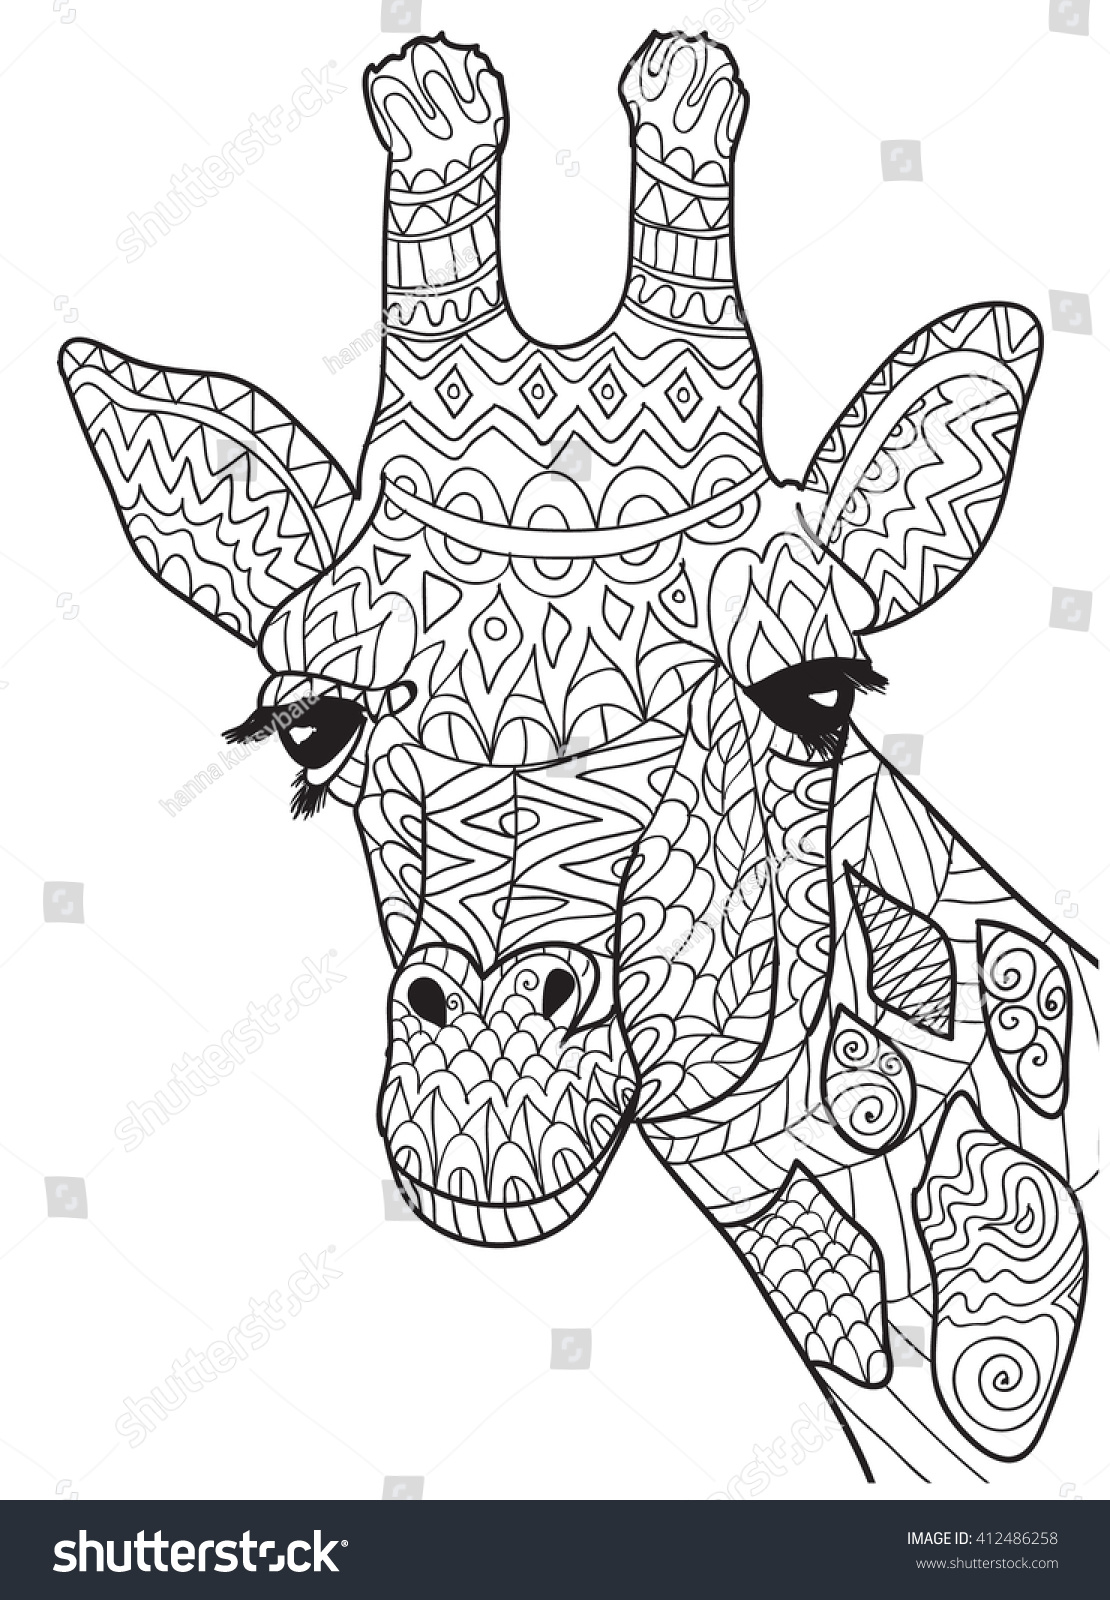 Coloring pages for adults giraffe - Hand Drawn Coloring Pages With Giraffe Zentangle Illustration For Adult Anti Stress Coloring Books Or